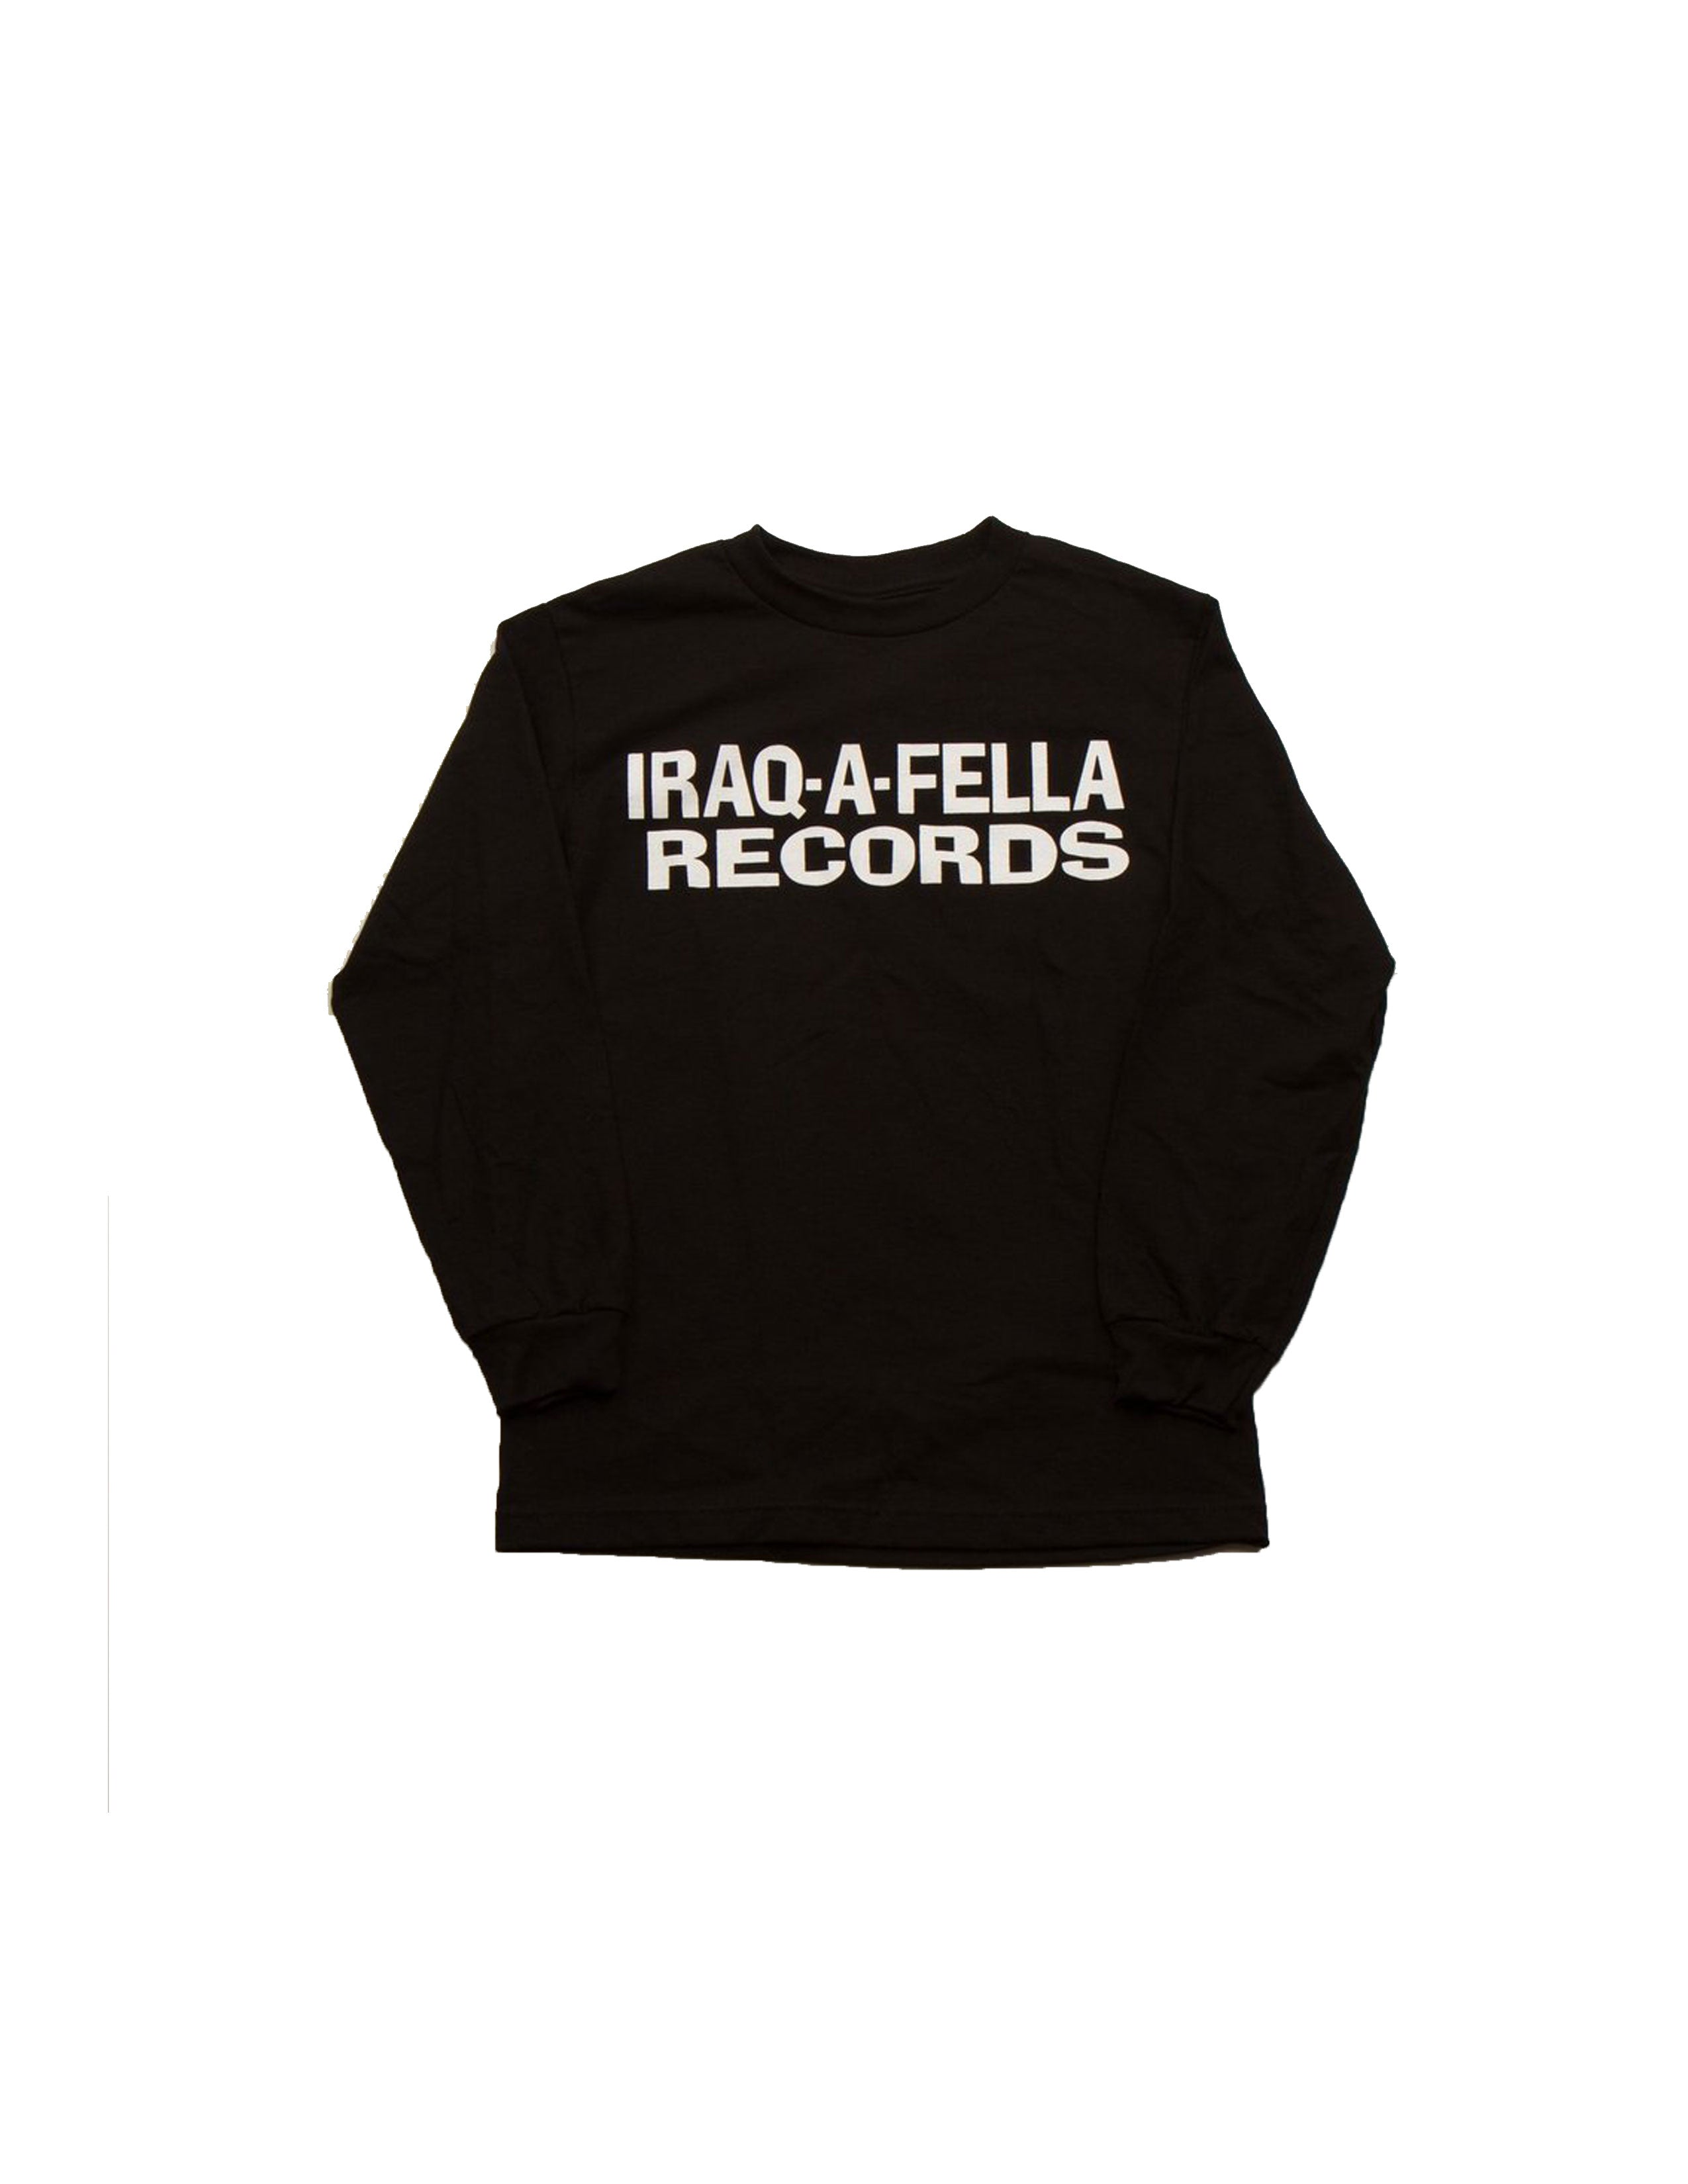 Iraq-A-Fella Records L/S Tee